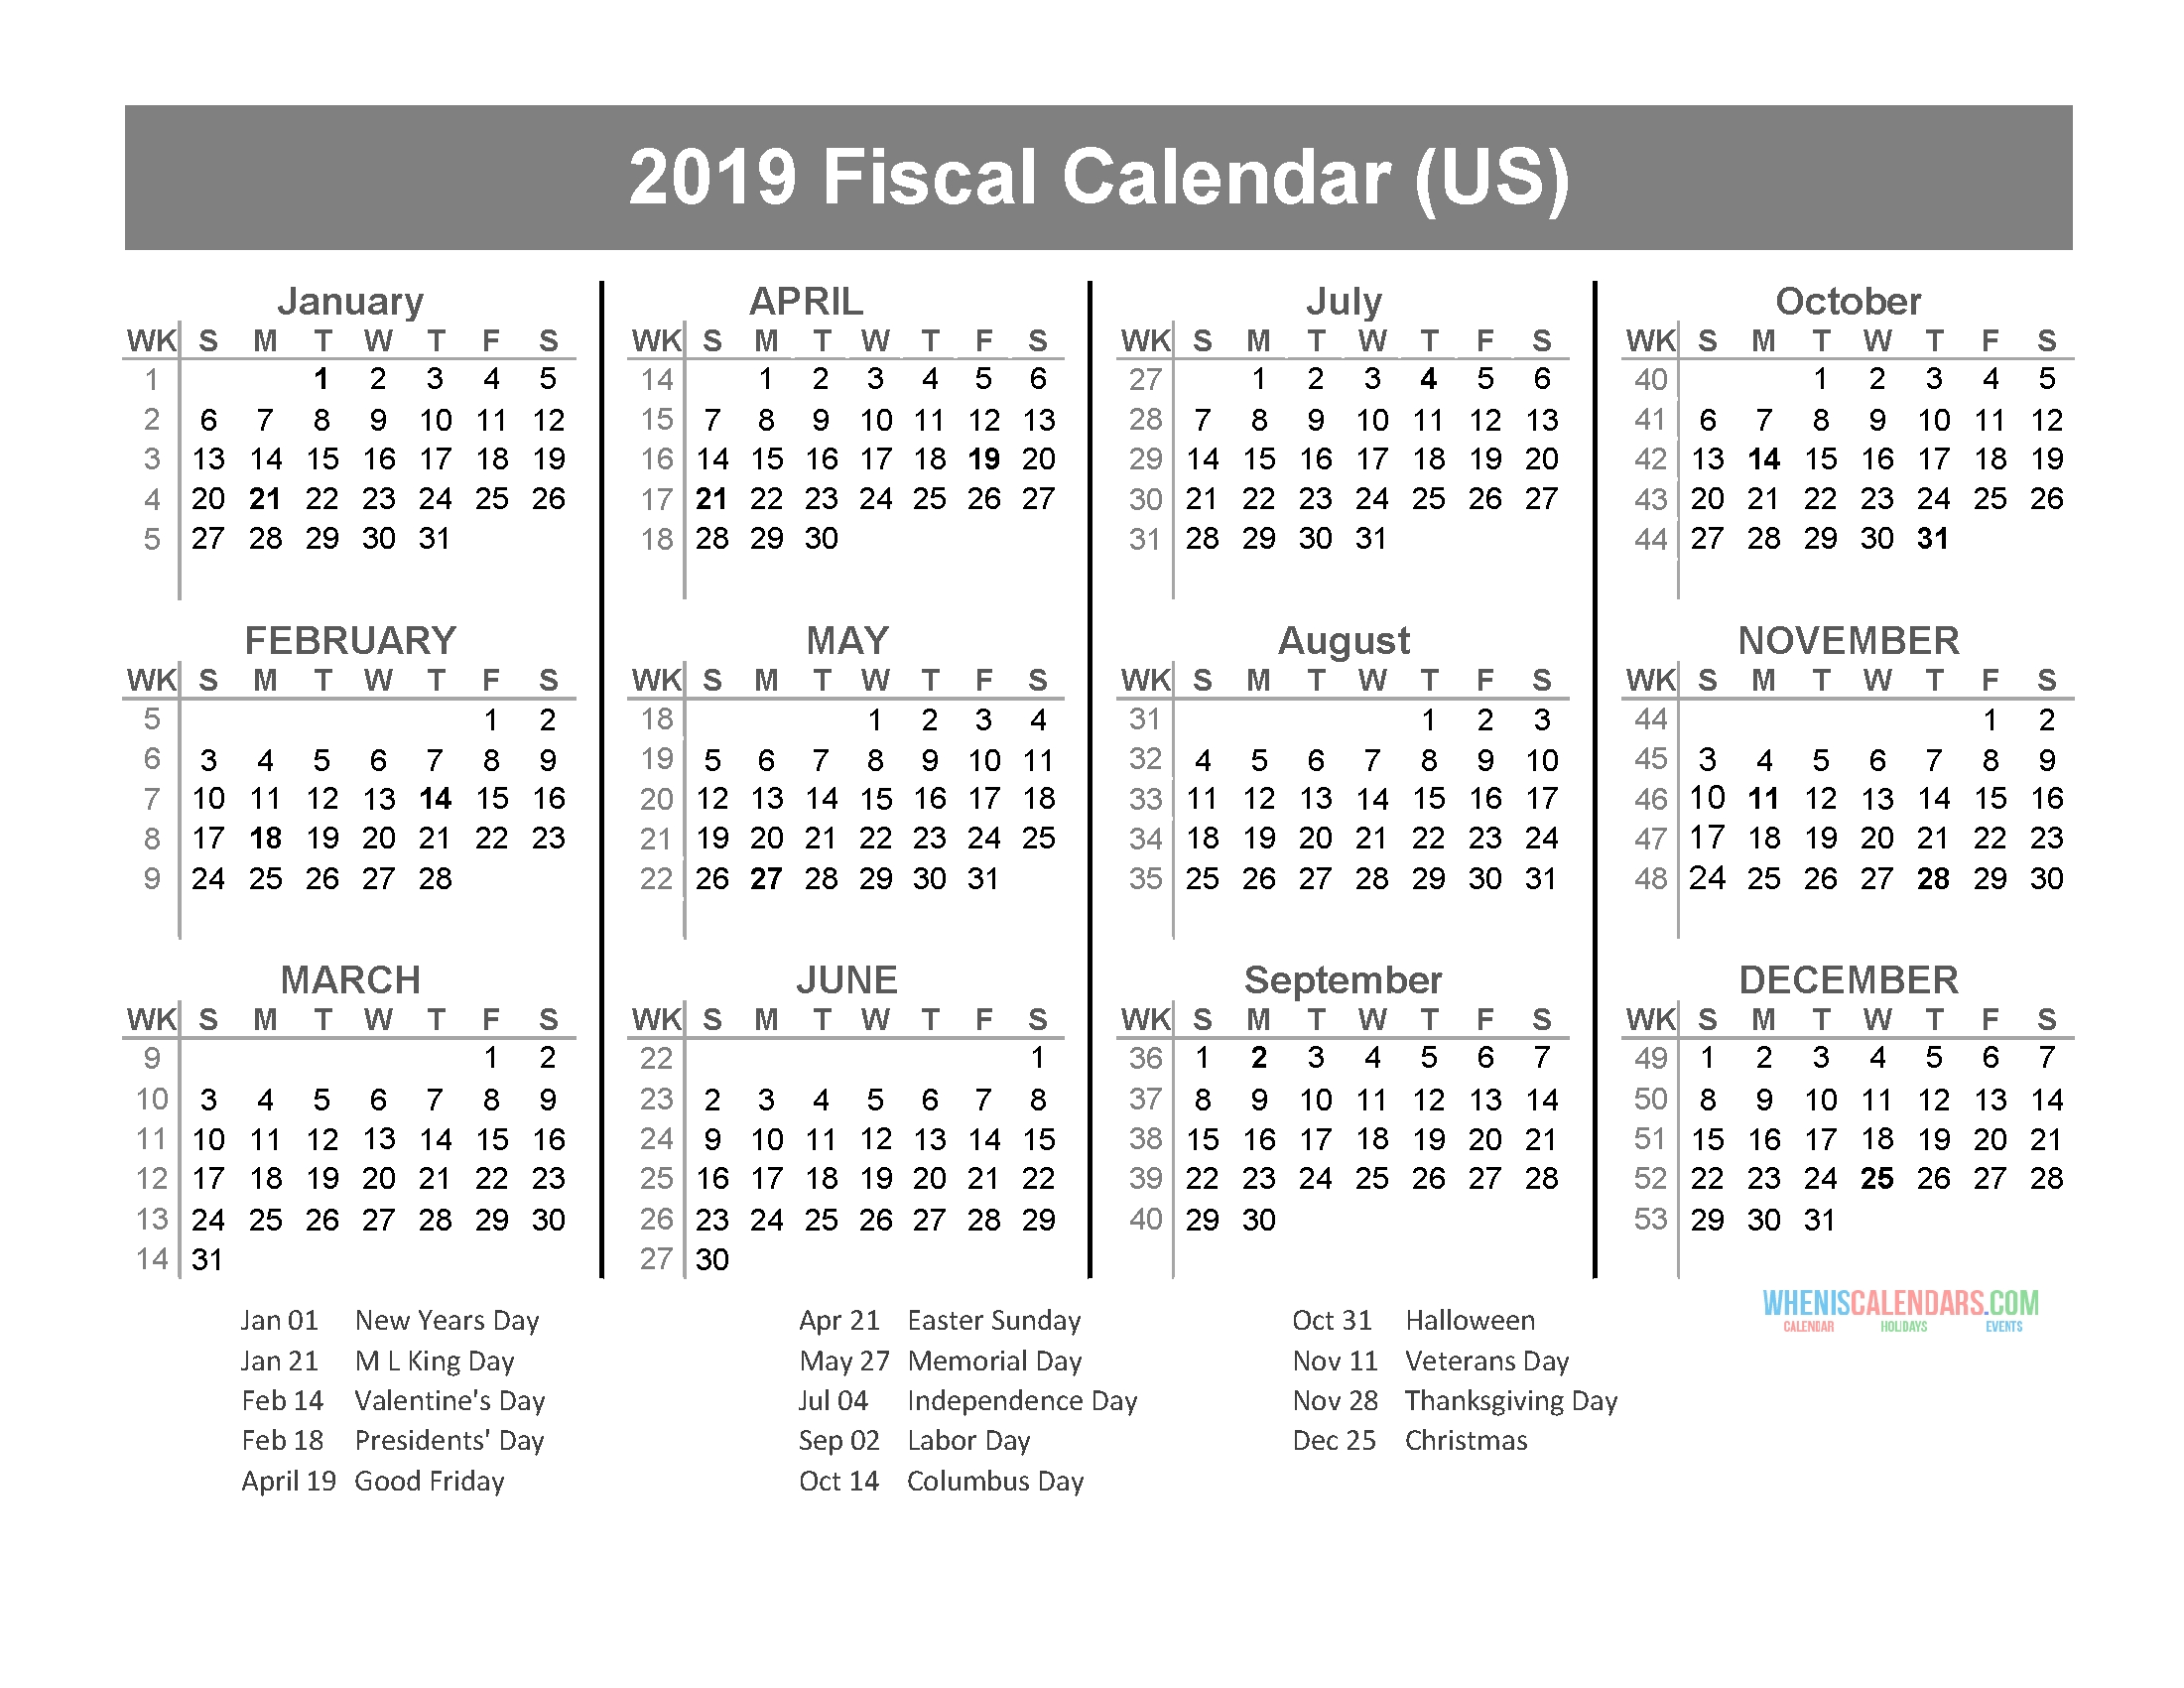 Fiscal Year 2019 Calendar With Us Holidays (January To  Australia What Are The Dates For The 18/19 Financial Year